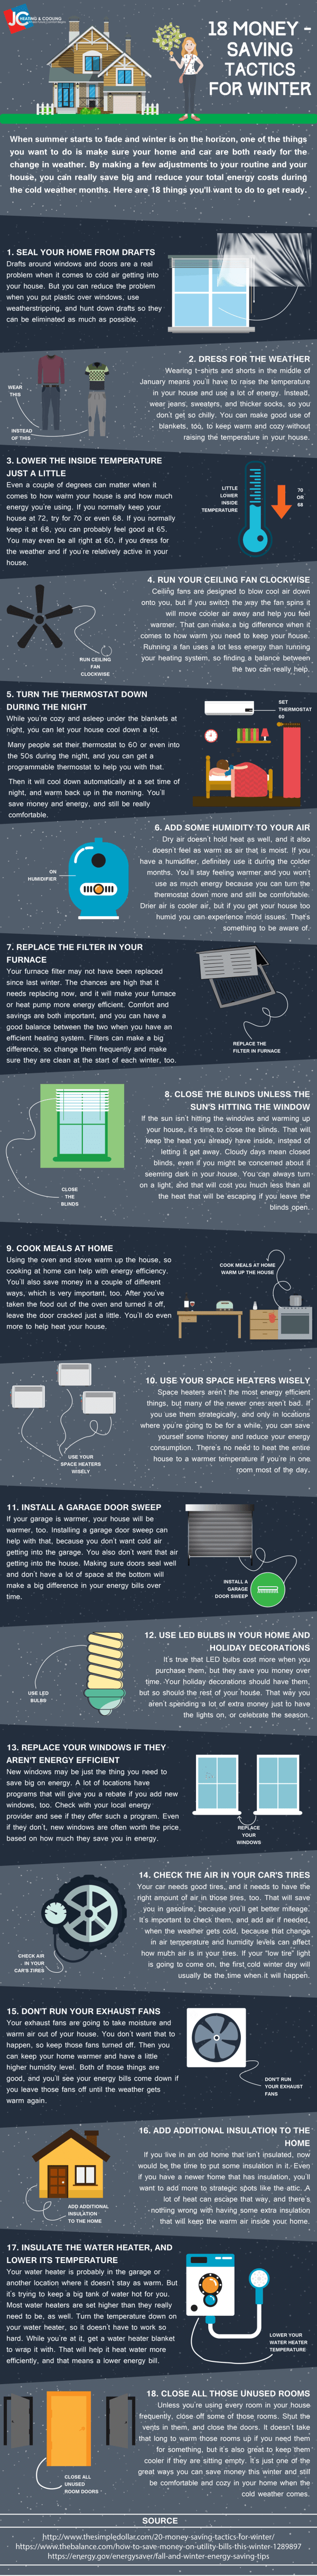 money-saving-tips-for-winter